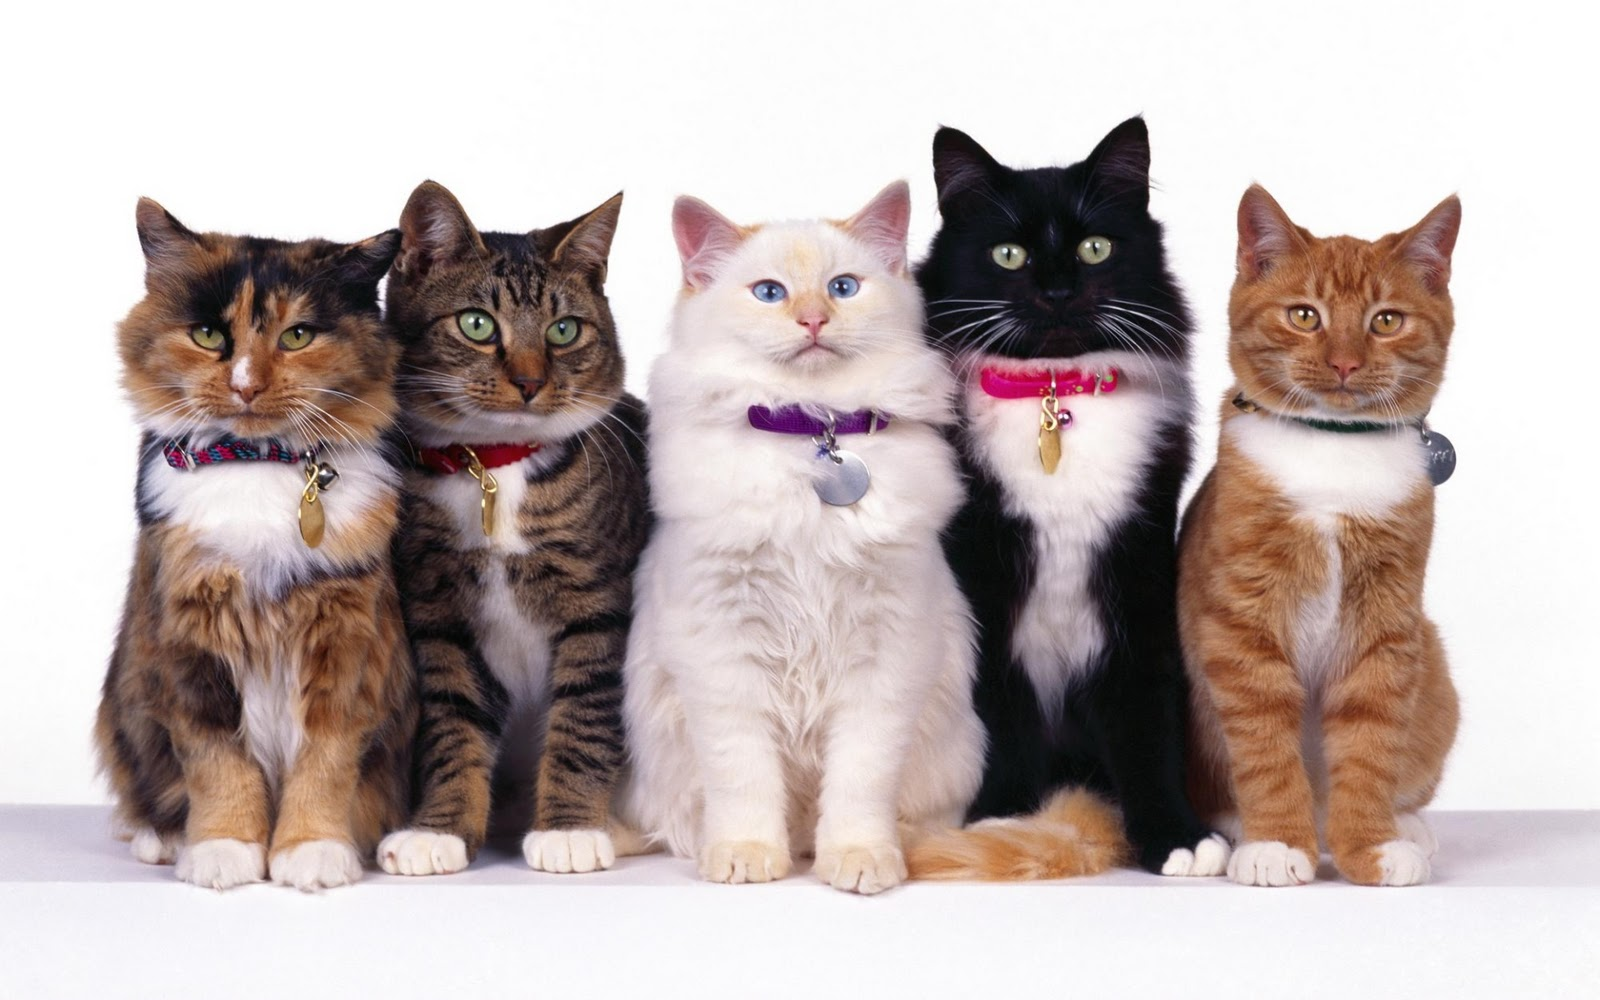 http://1.bp.blogspot.com/-l8brhKZ_xas/TopamF6ffGI/AAAAAAAABb0/3LBxdA05oNQ/s1600/group_of_cats_widescreen_wallpaper_91080.jpg